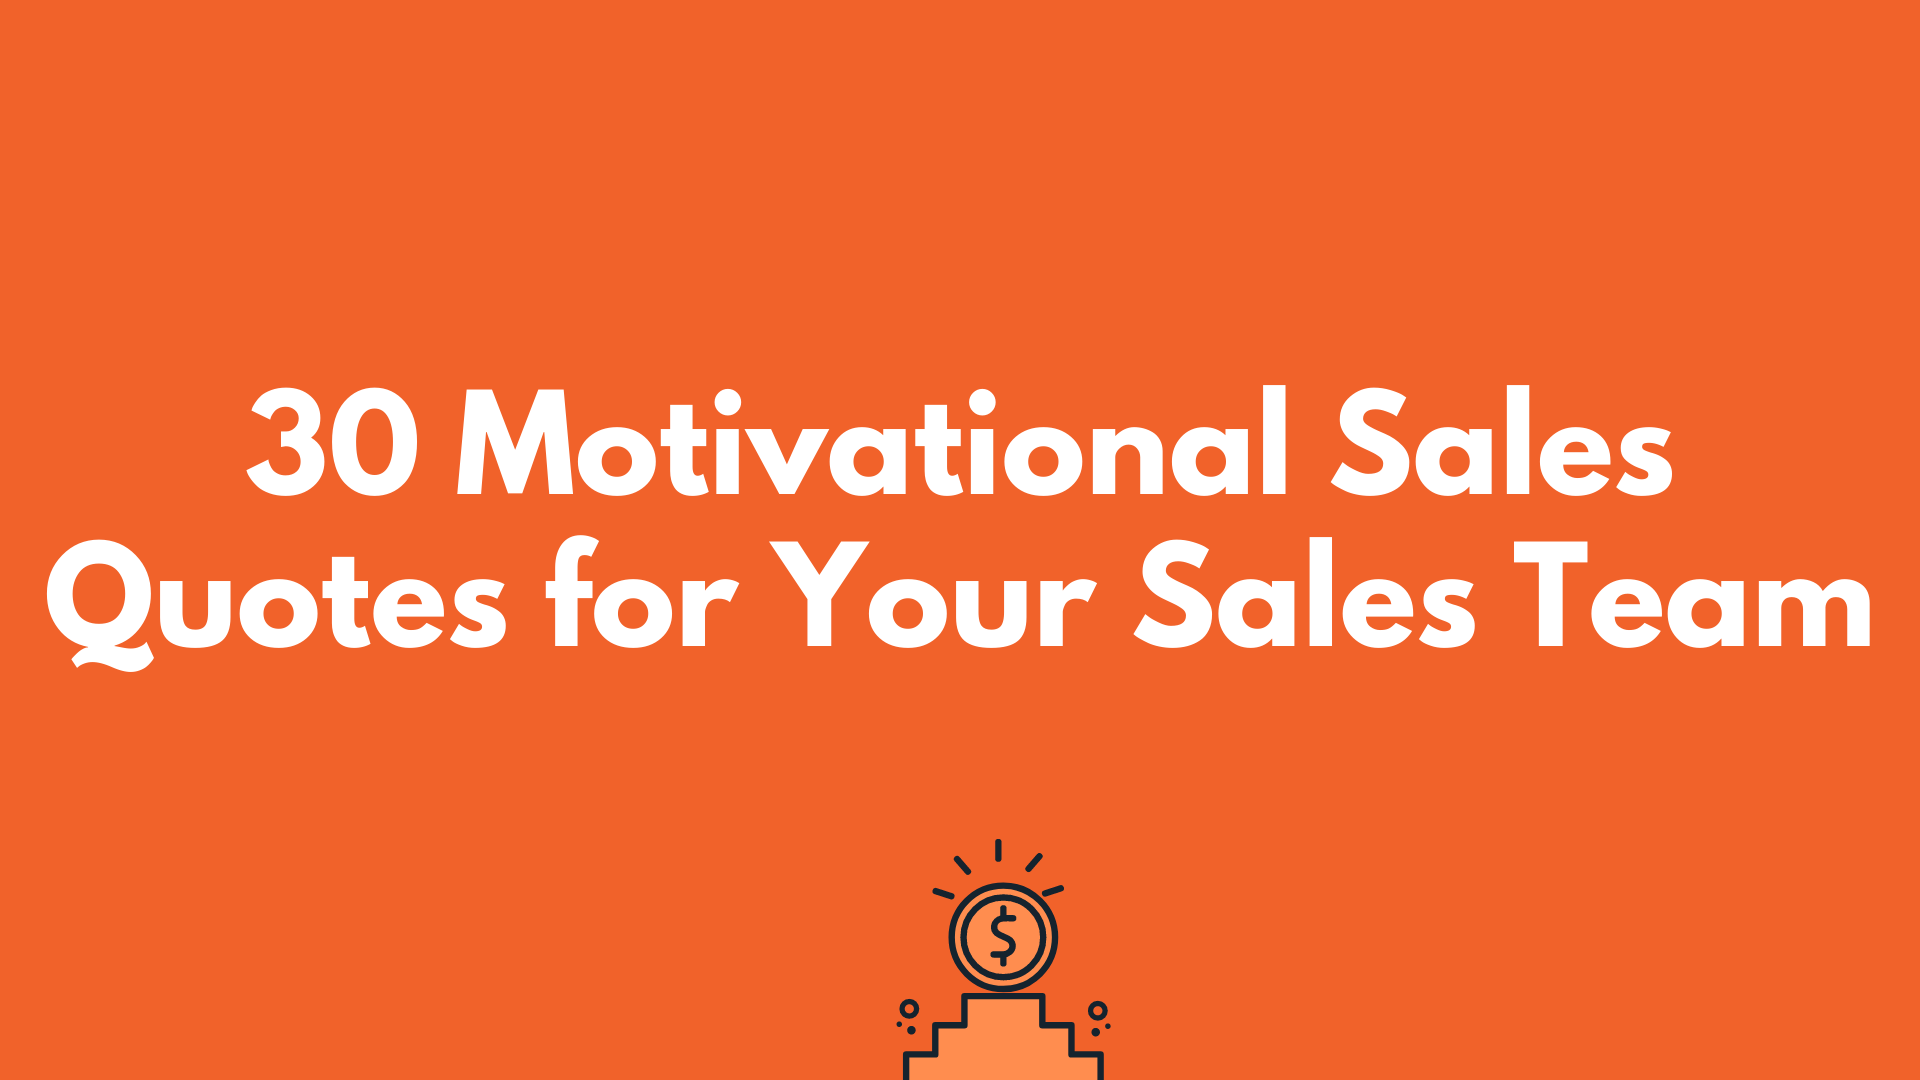 30 Motivational Sales Quotes for your Sales Team